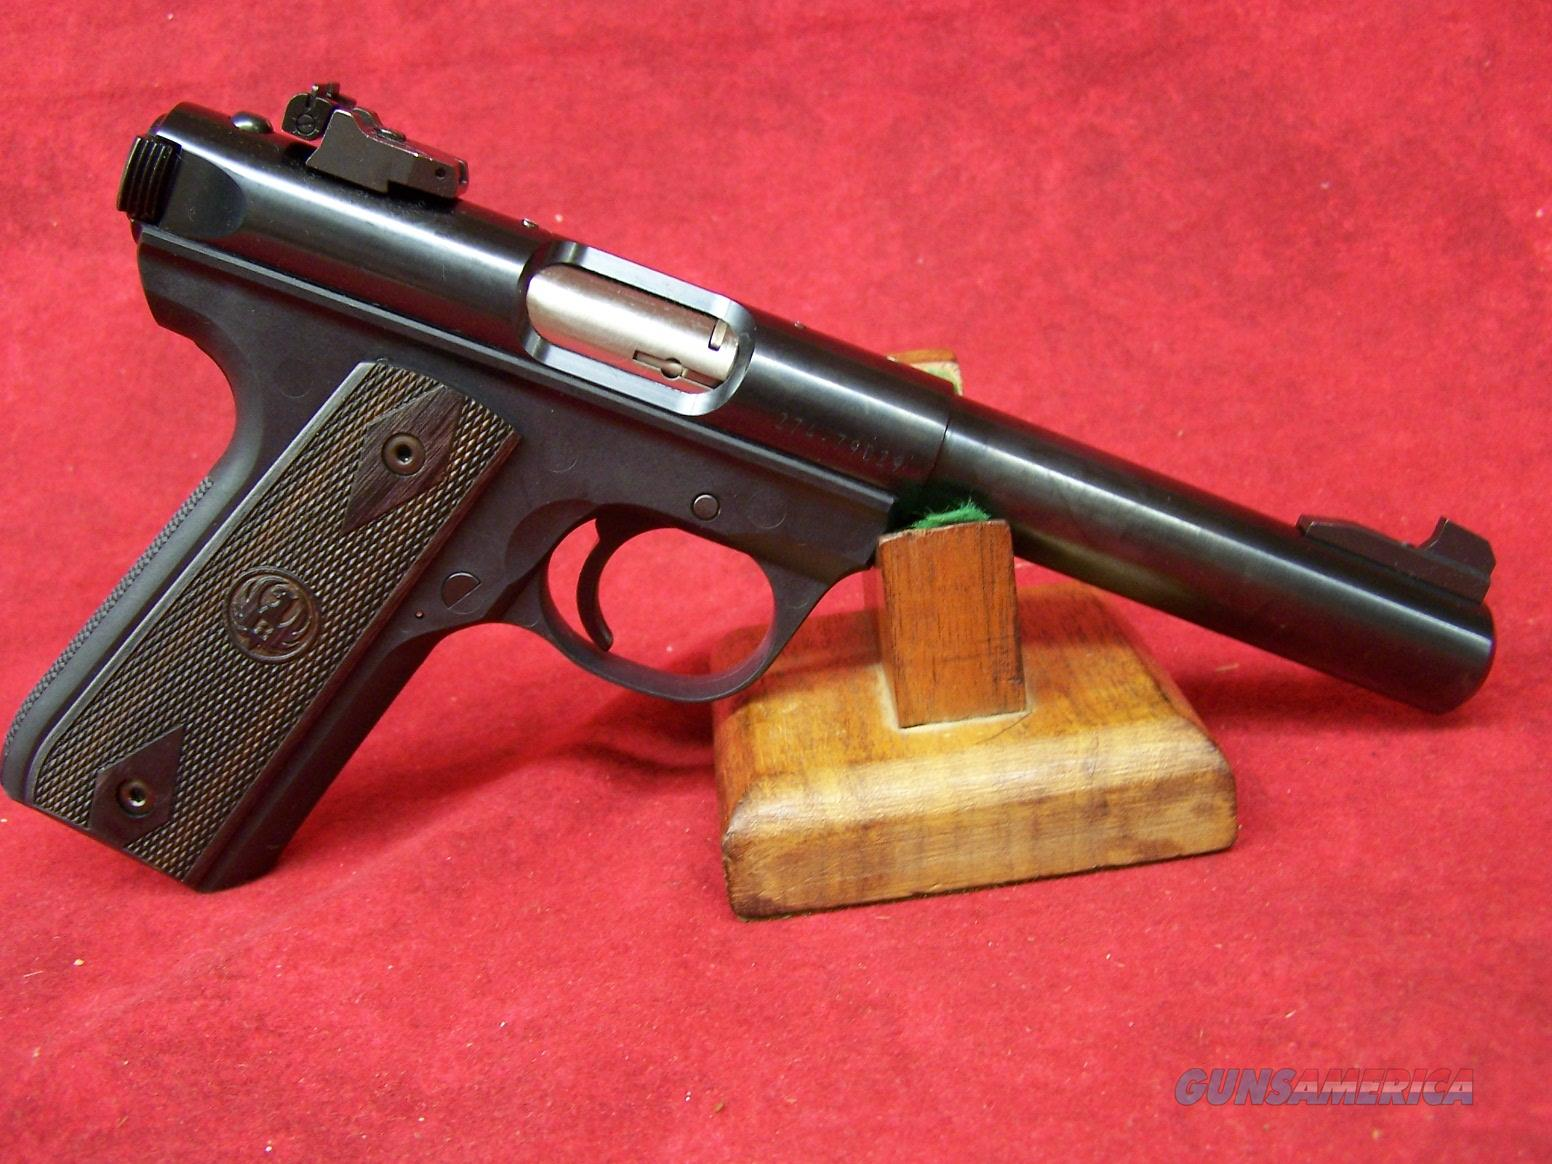 Ruger 22/45 Mark III With Replaceable Black Grip Panels .22 Long Rifle 5.5 Inch Blued (10158)   Guns > Pistols > Ruger Semi-Auto Pistols > Mark I/II/III Family